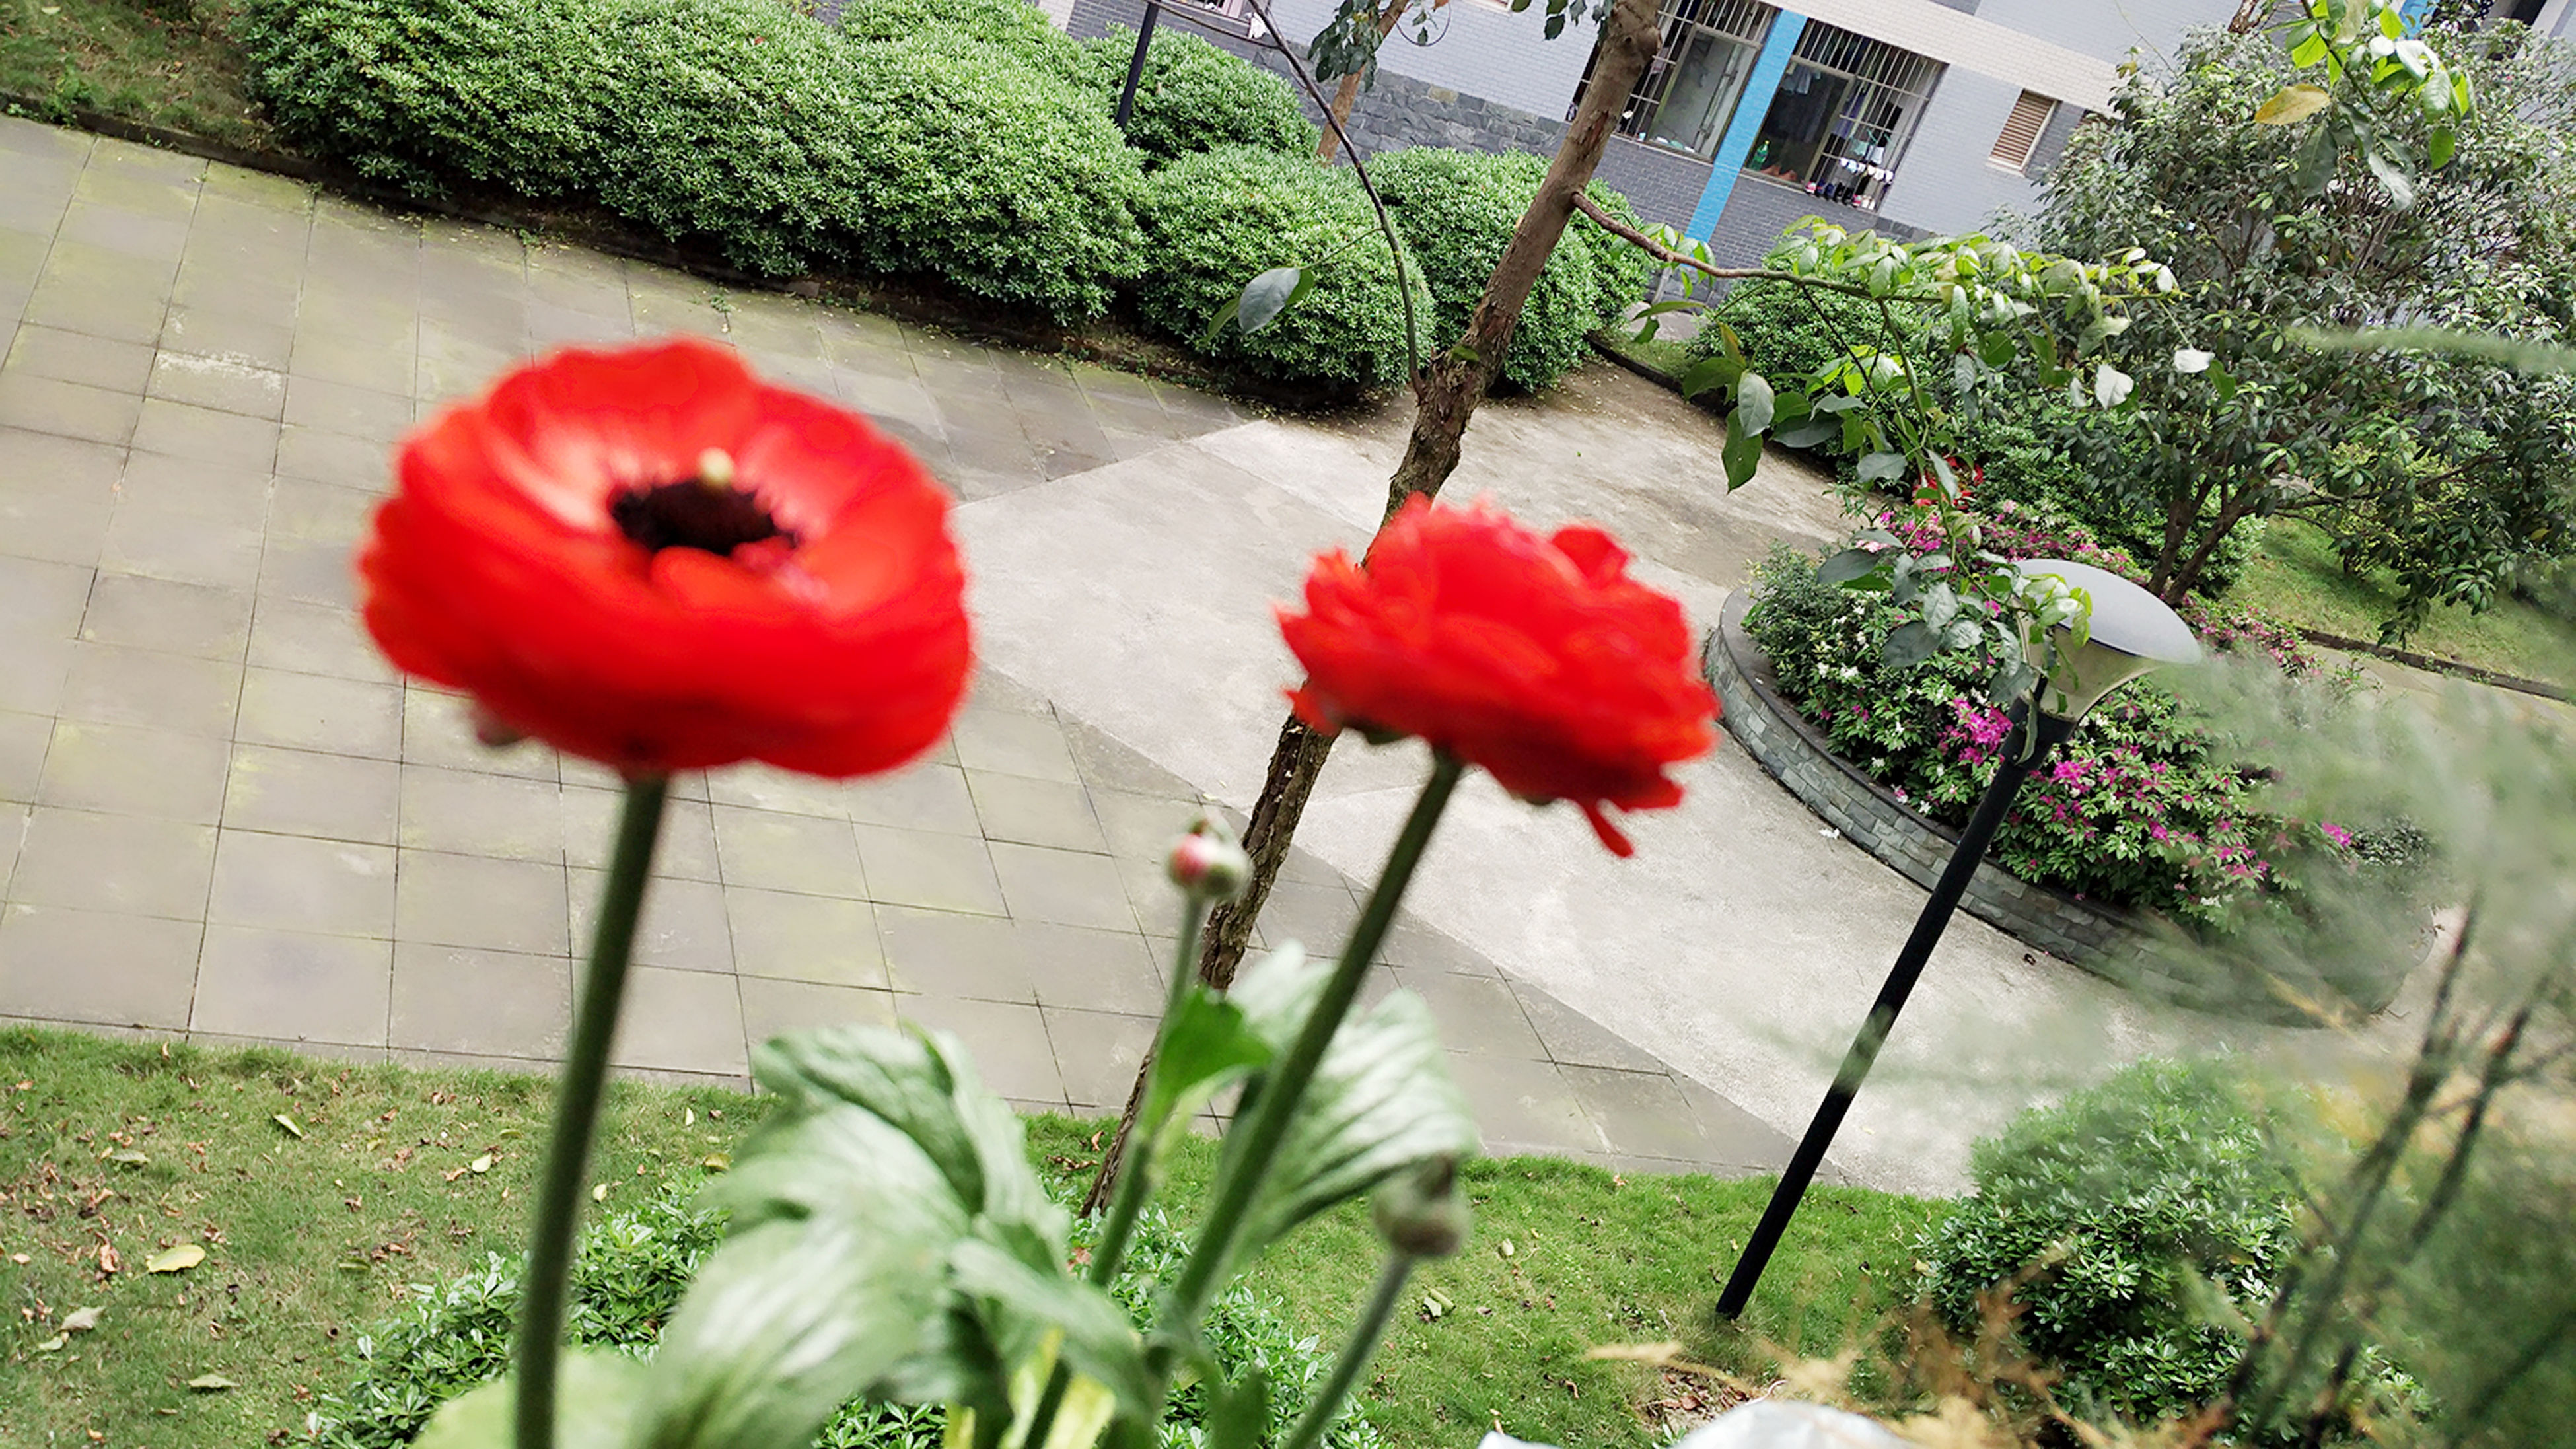 flower, red, plant, growth, fragility, freshness, petal, flower head, leaf, front or back yard, built structure, beauty in nature, nature, blooming, building exterior, architecture, day, stem, in bloom, single flower